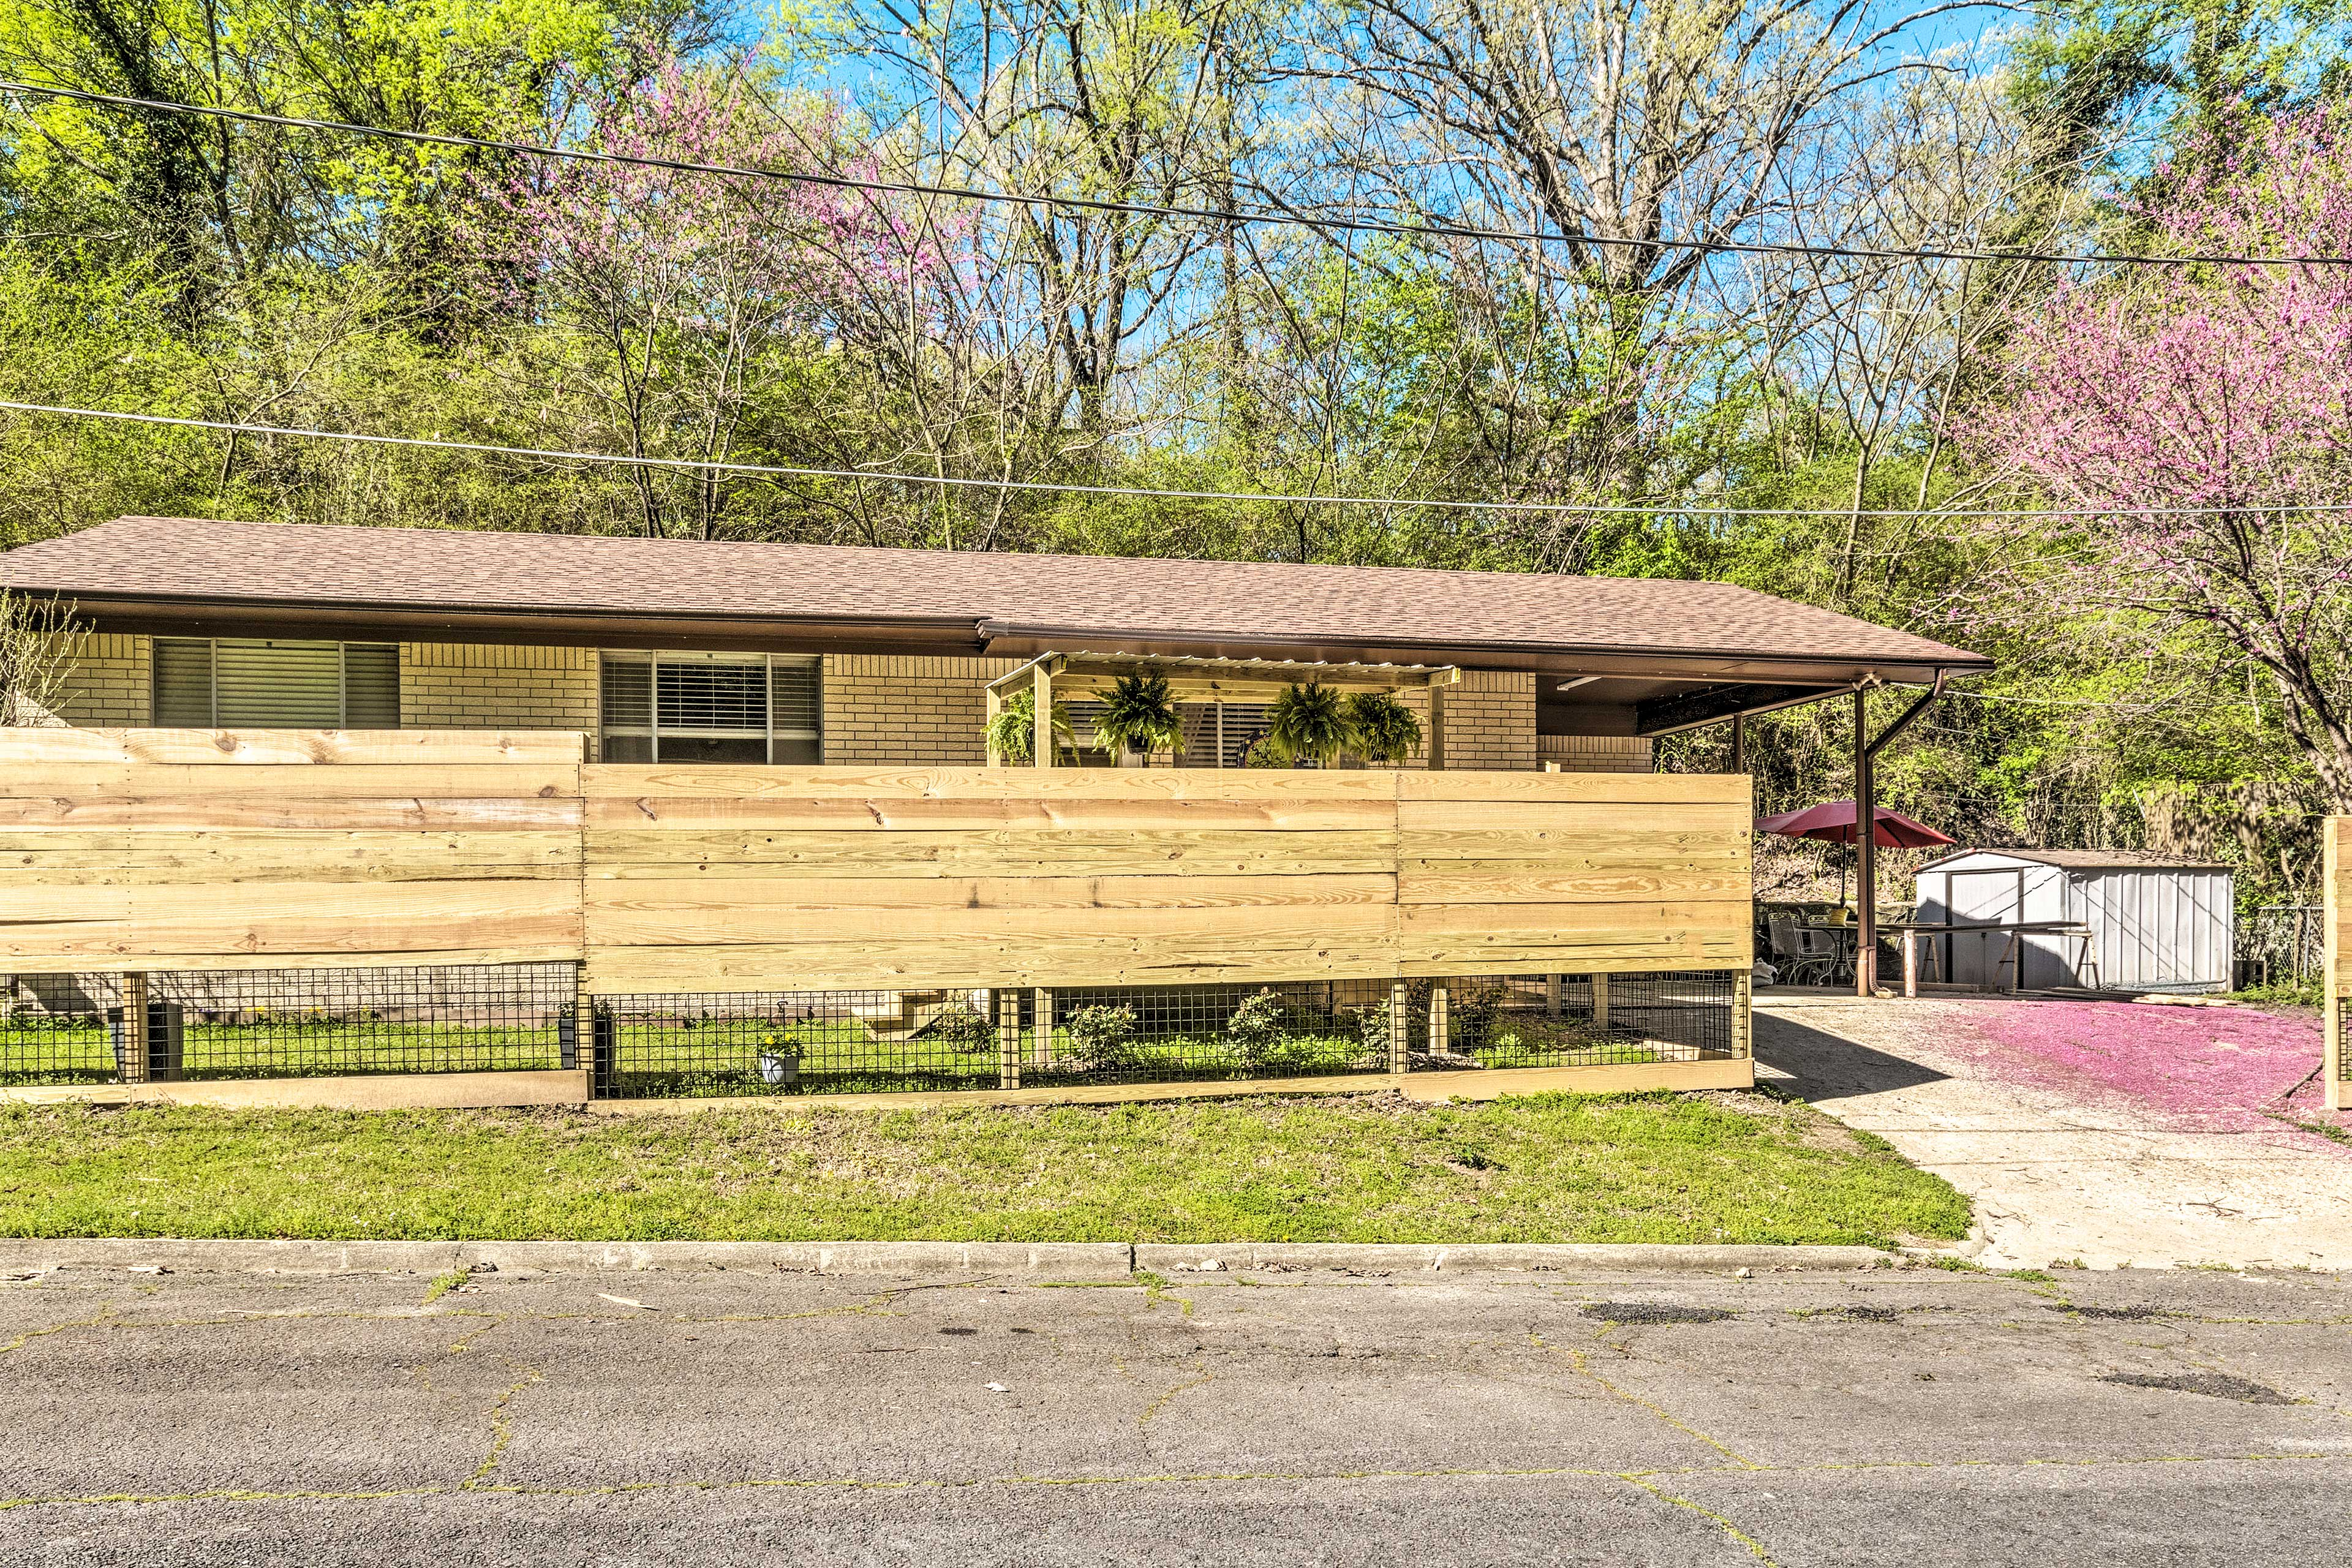 Located 1.5 miles from Hot Springs National Park, this home can't be beat!